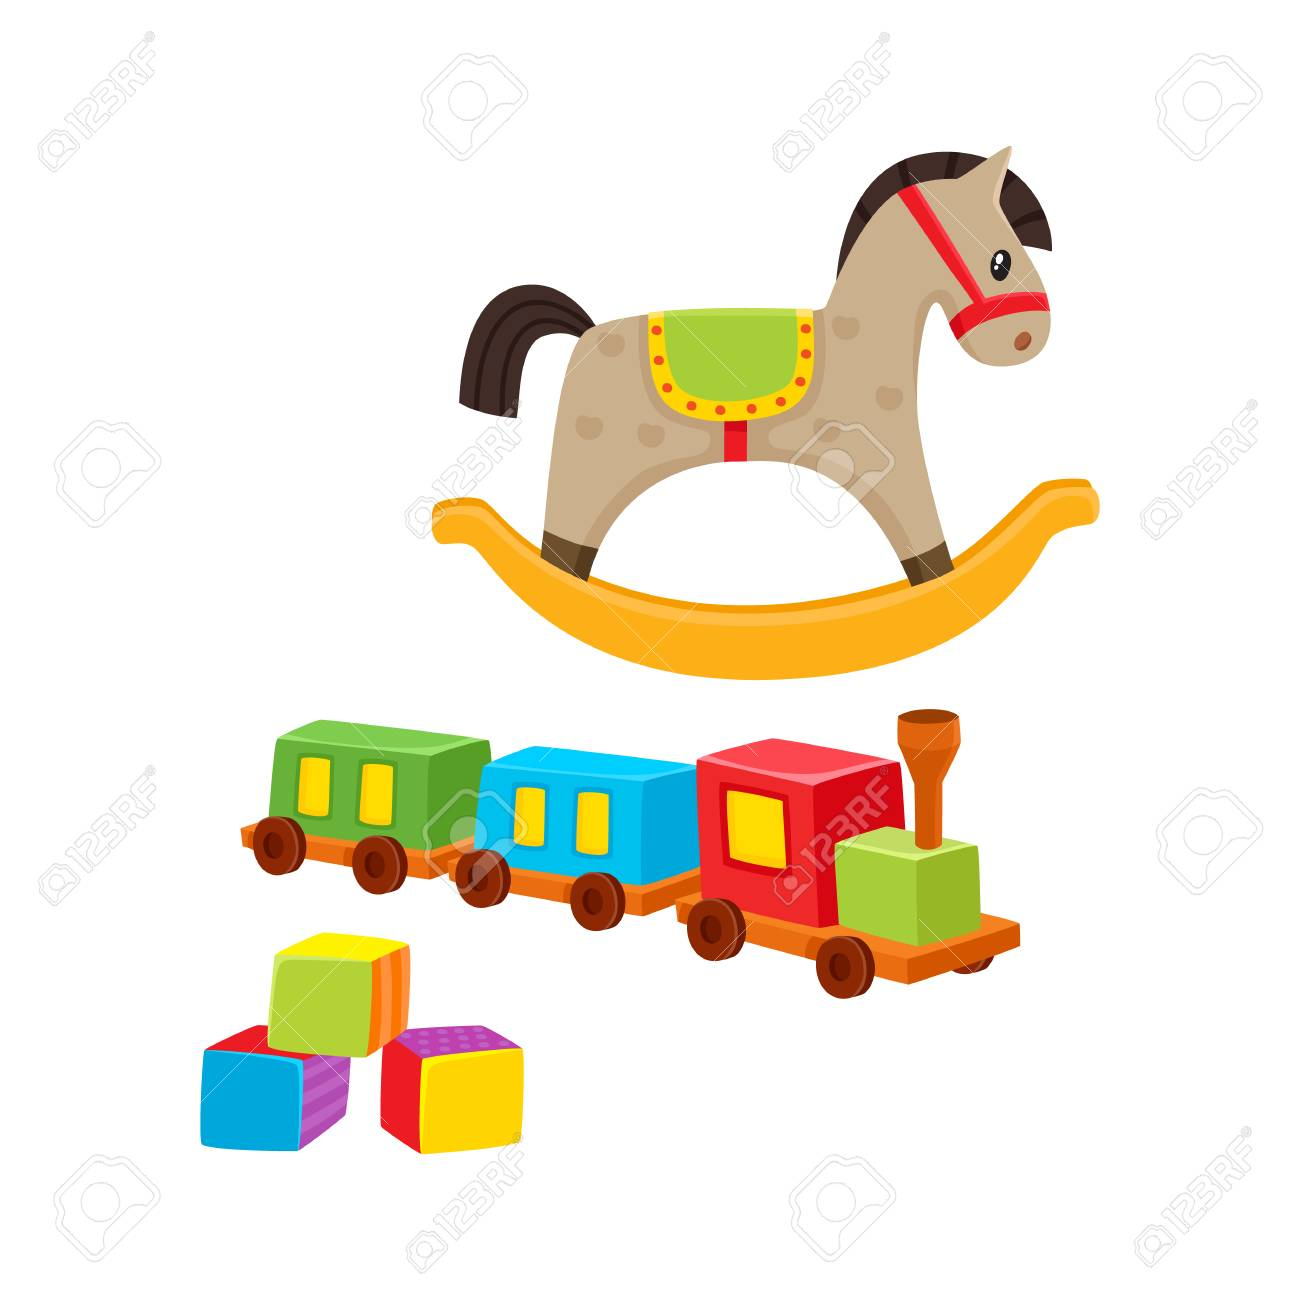 Baby Wooden Toys Train Rocking Horse Building Blocks Cartoon